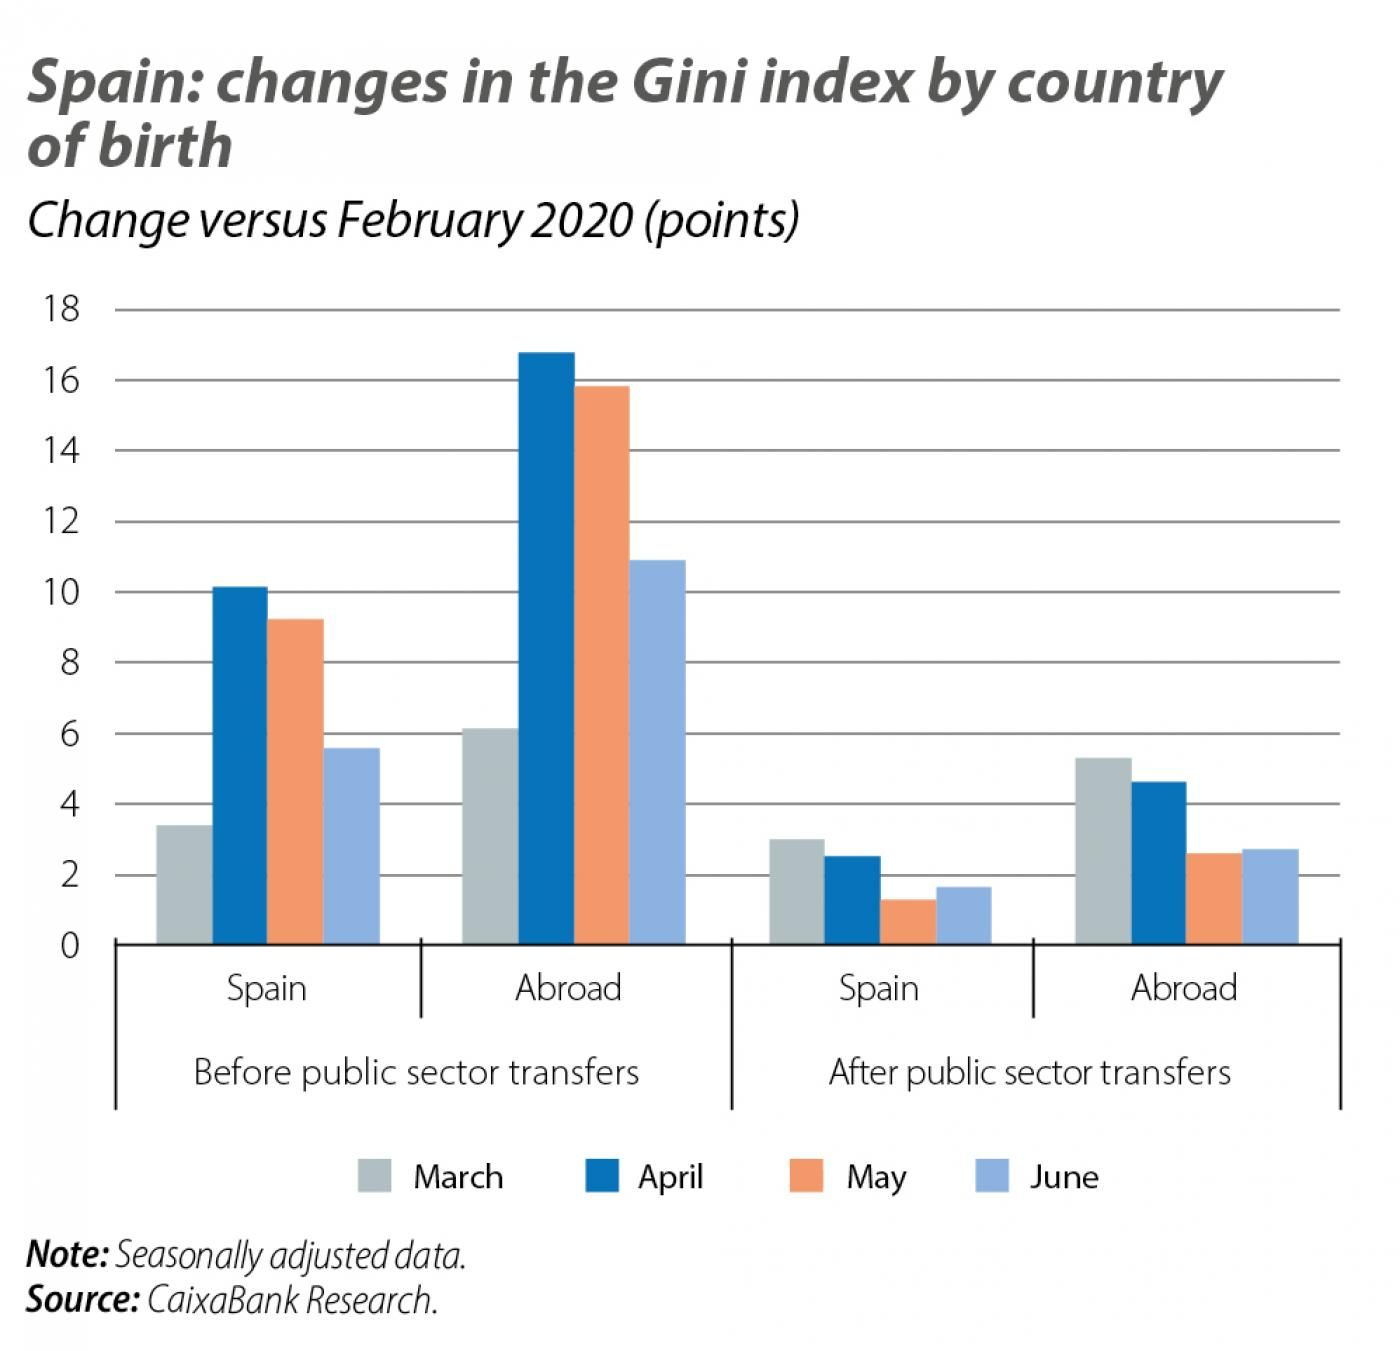 Spain: changes in the Gini index by country of birth